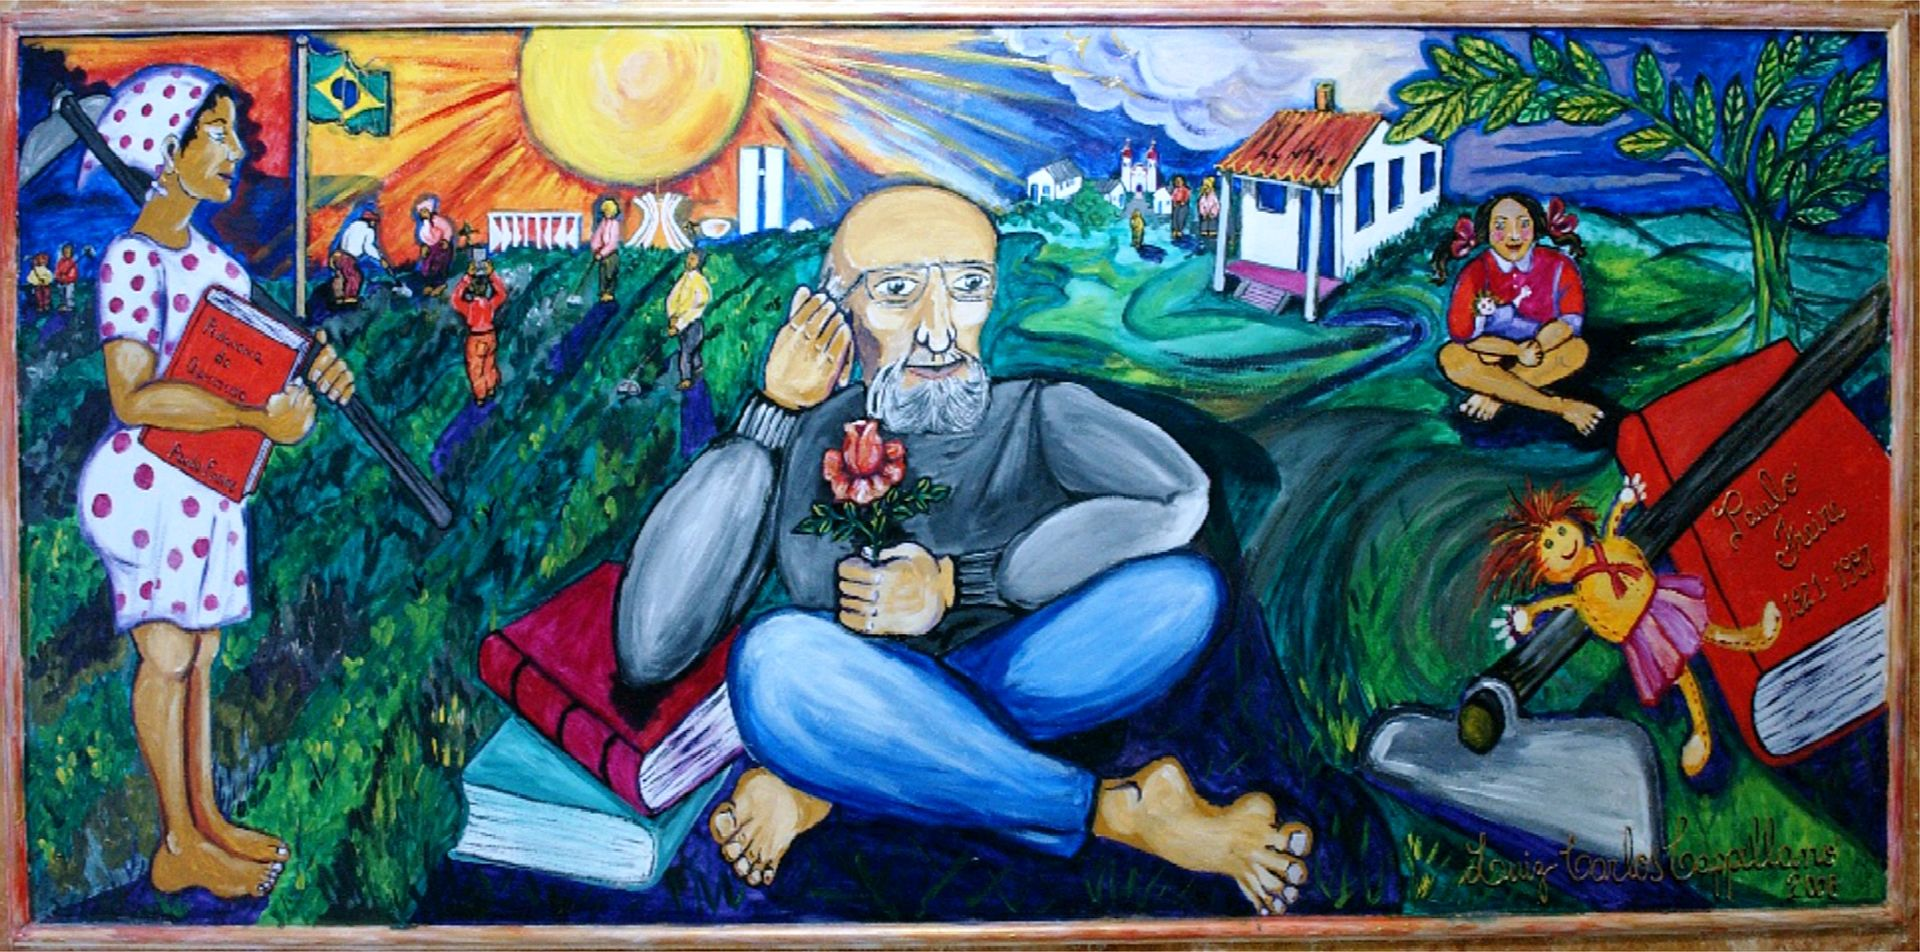 Mural of Paulo Freire surrounded by books and students.